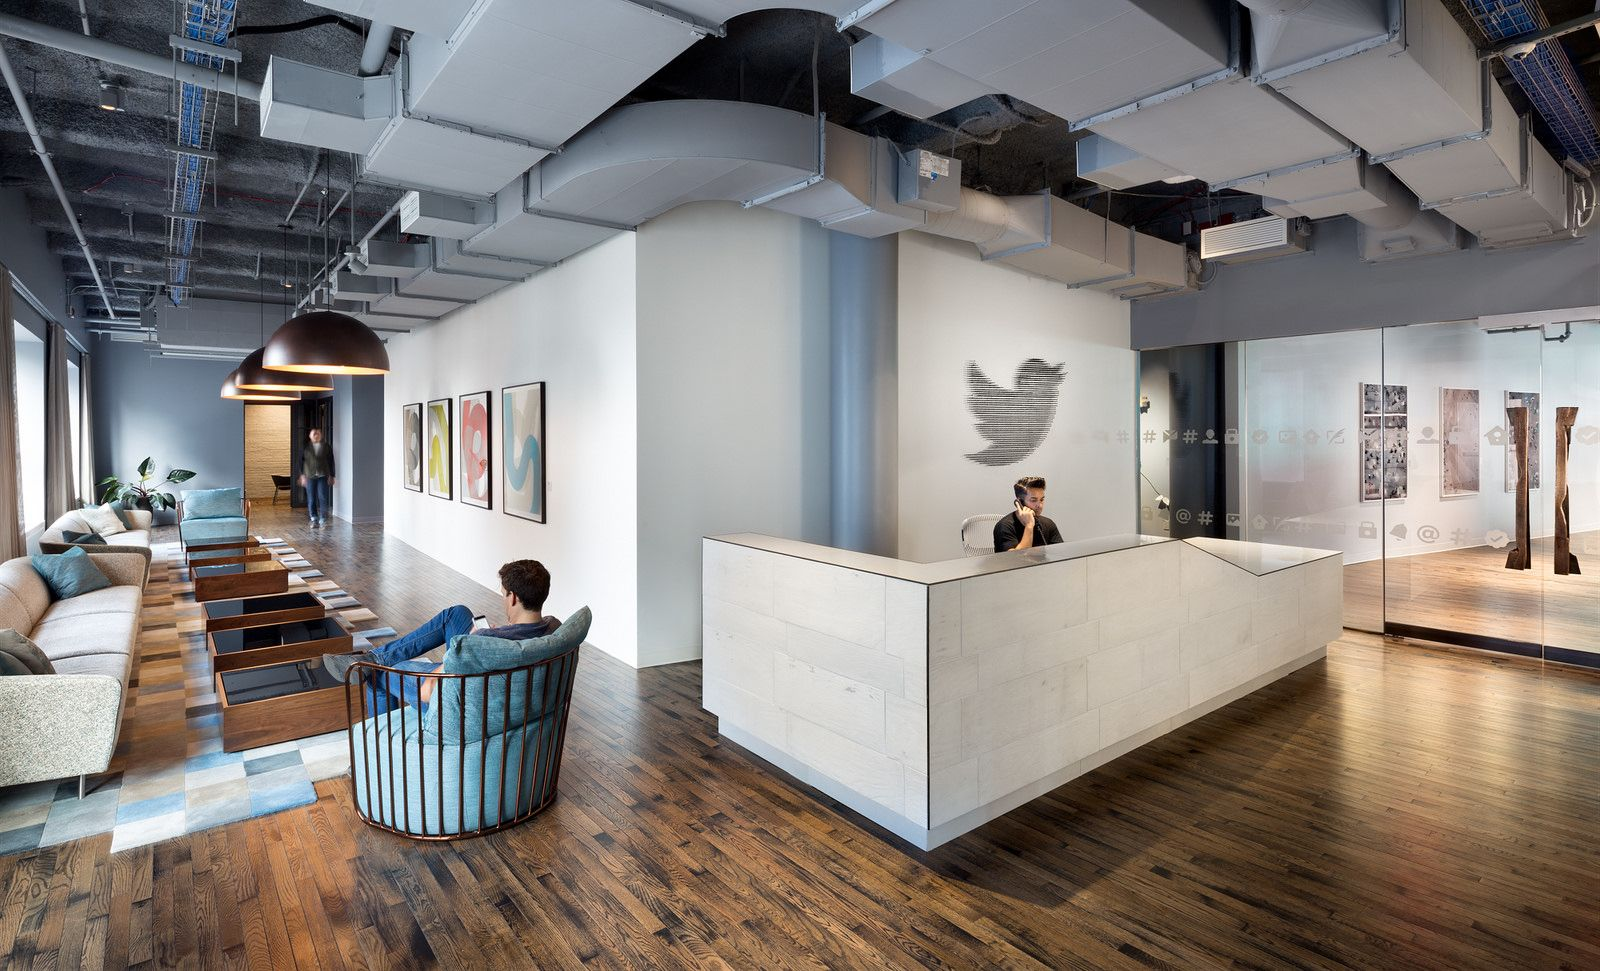 Twitter nyc by twitter